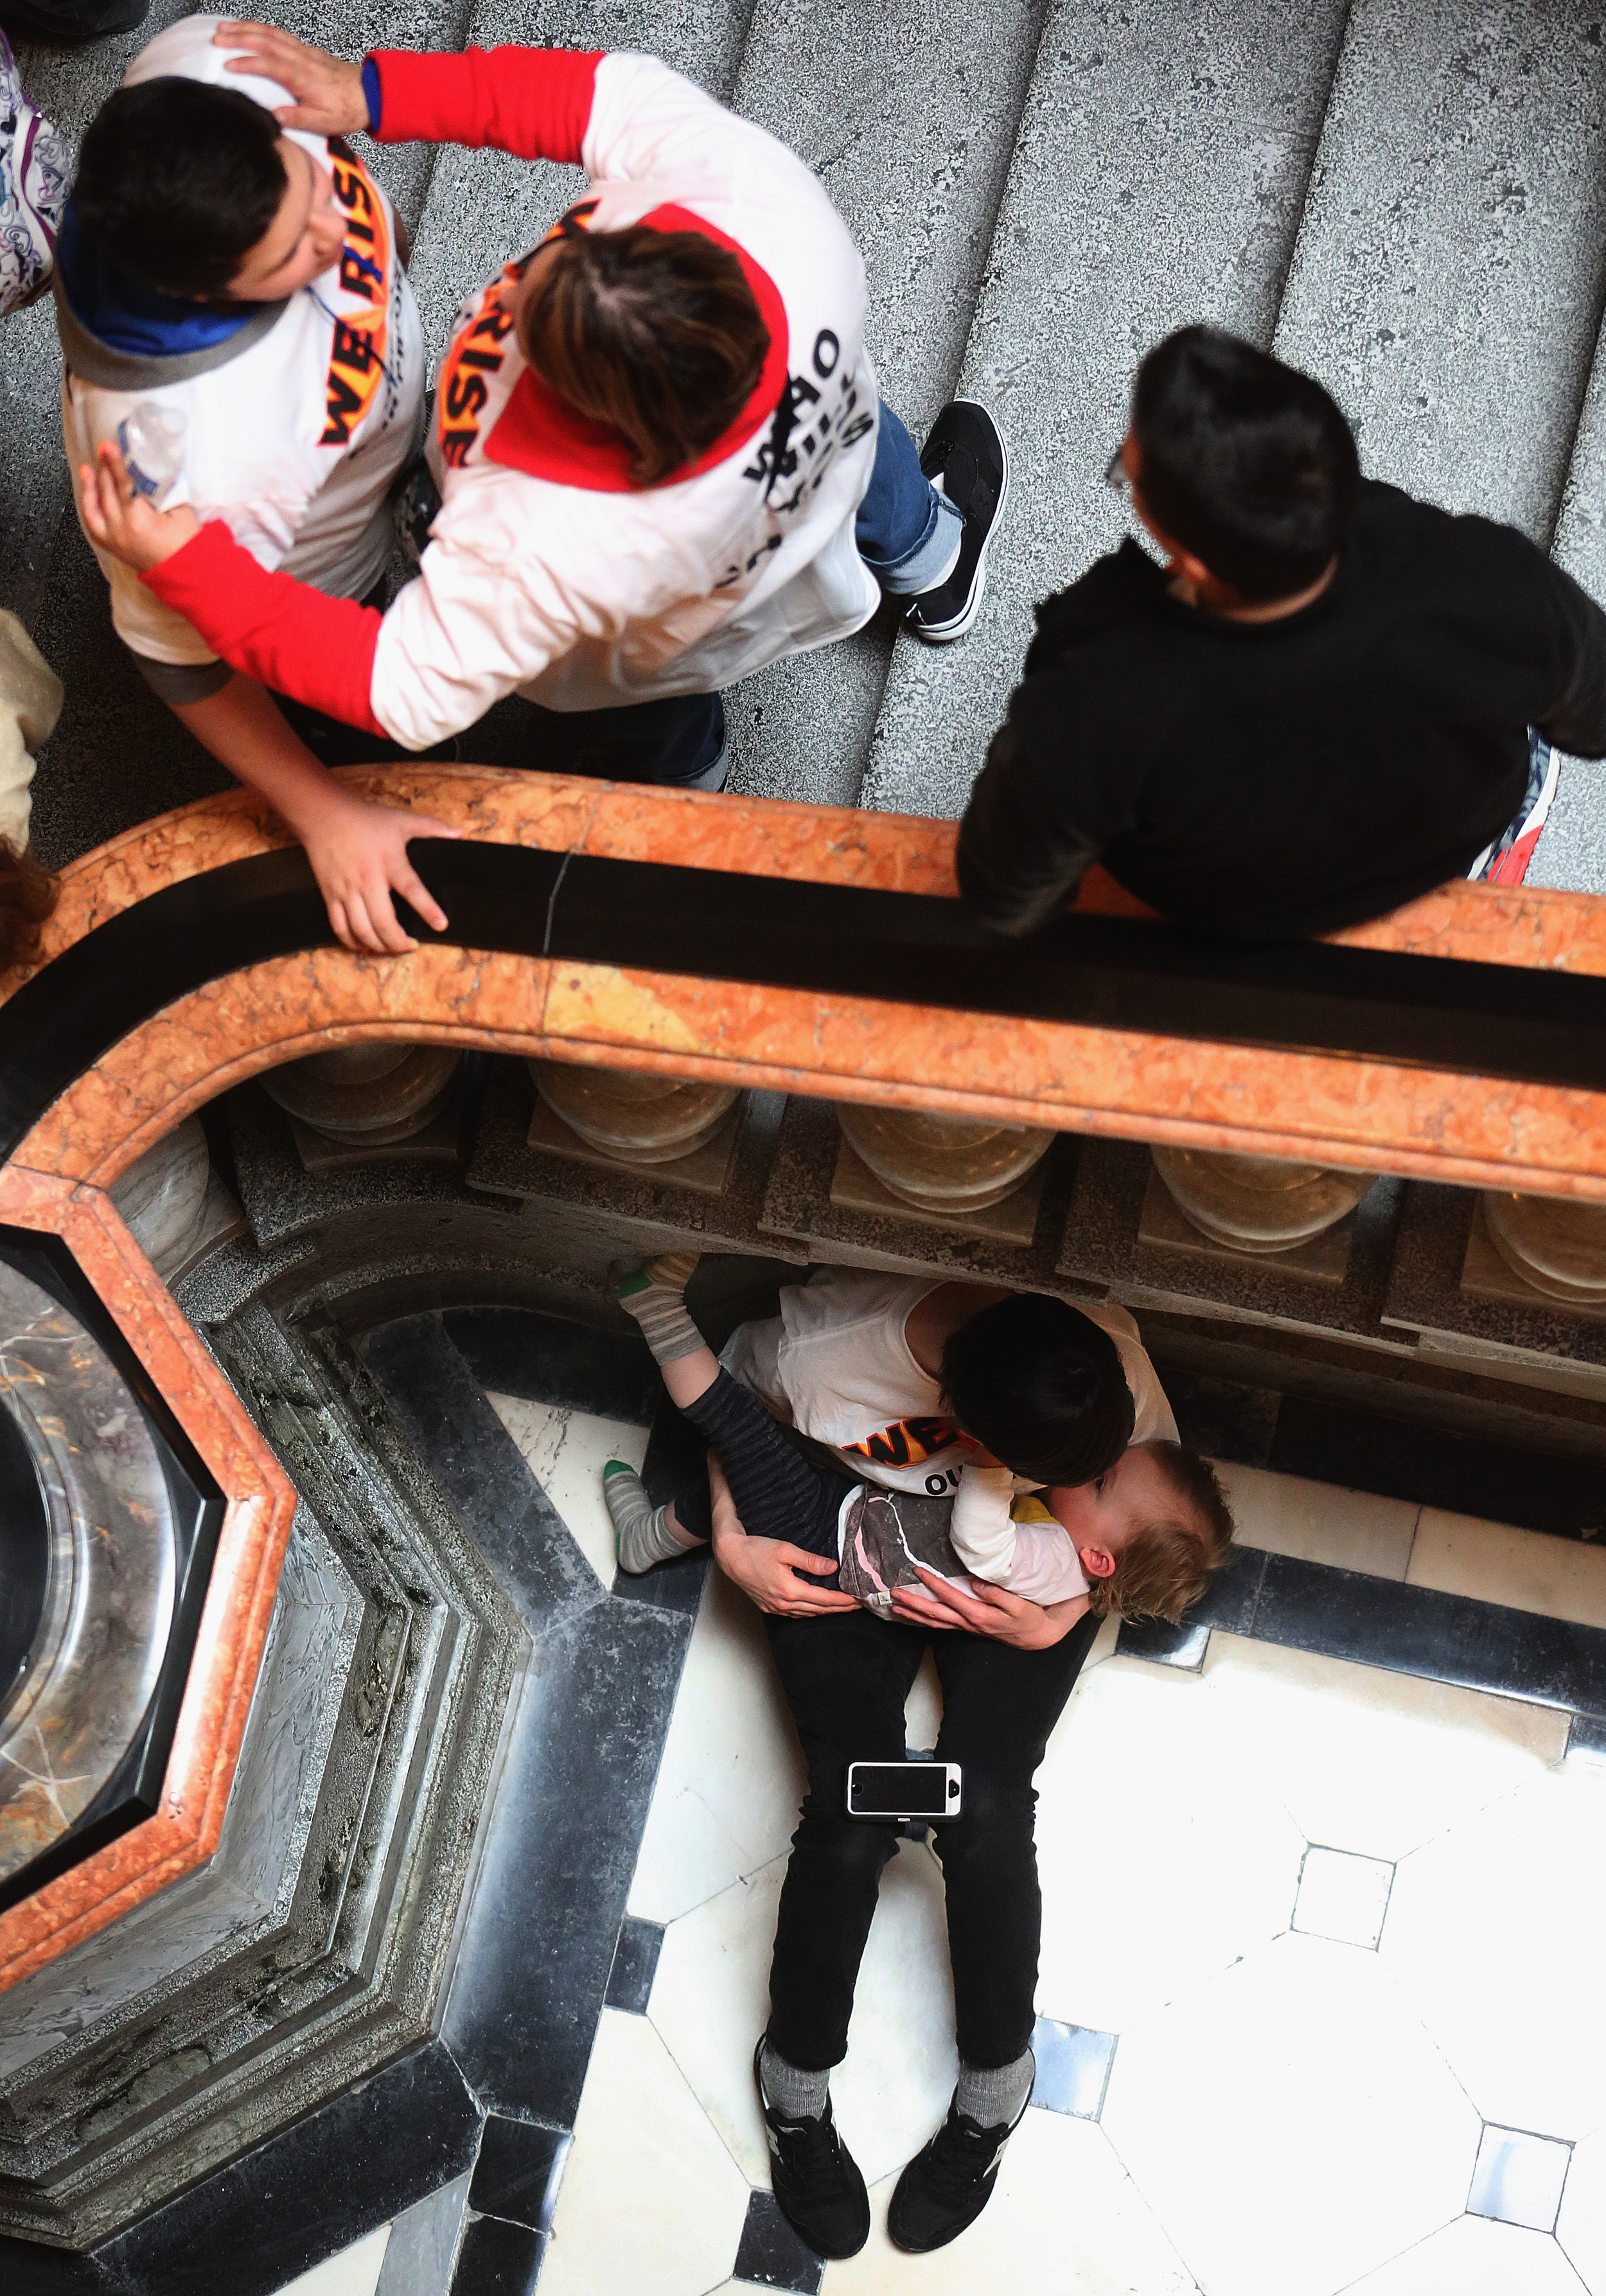 """A mother attending the rally nurses her child behind a bannister inside the State Capitol building on Wed. March 11, 2015. As part of """"We Rise"""", a national day of action targeting state budget cuts, several thousand people from faith, community and labor organizations including adults, children and clergy affected by Gov. Bruce Rauner's proposed cuts gathered in Springfield to protest. The event began with a rally inside the Capitol building followed by a march to the governor's mansion where a mock """"funeral"""" for the """"99%"""" took place. David Spencer/The State Journal-Register"""